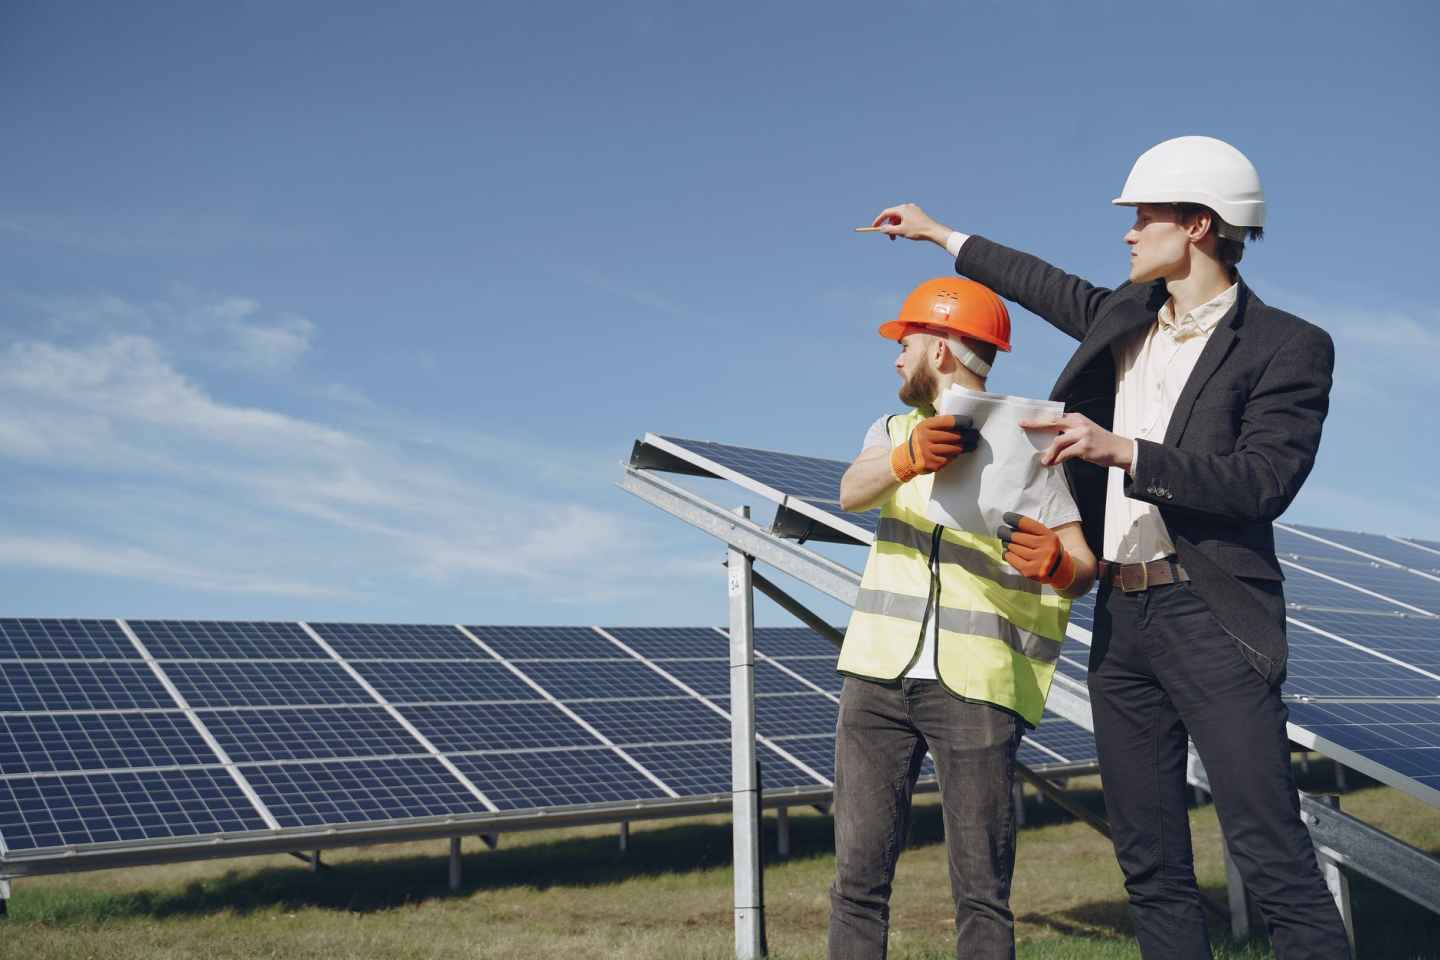 discussion of technical details of solar panels between businessman and foreman